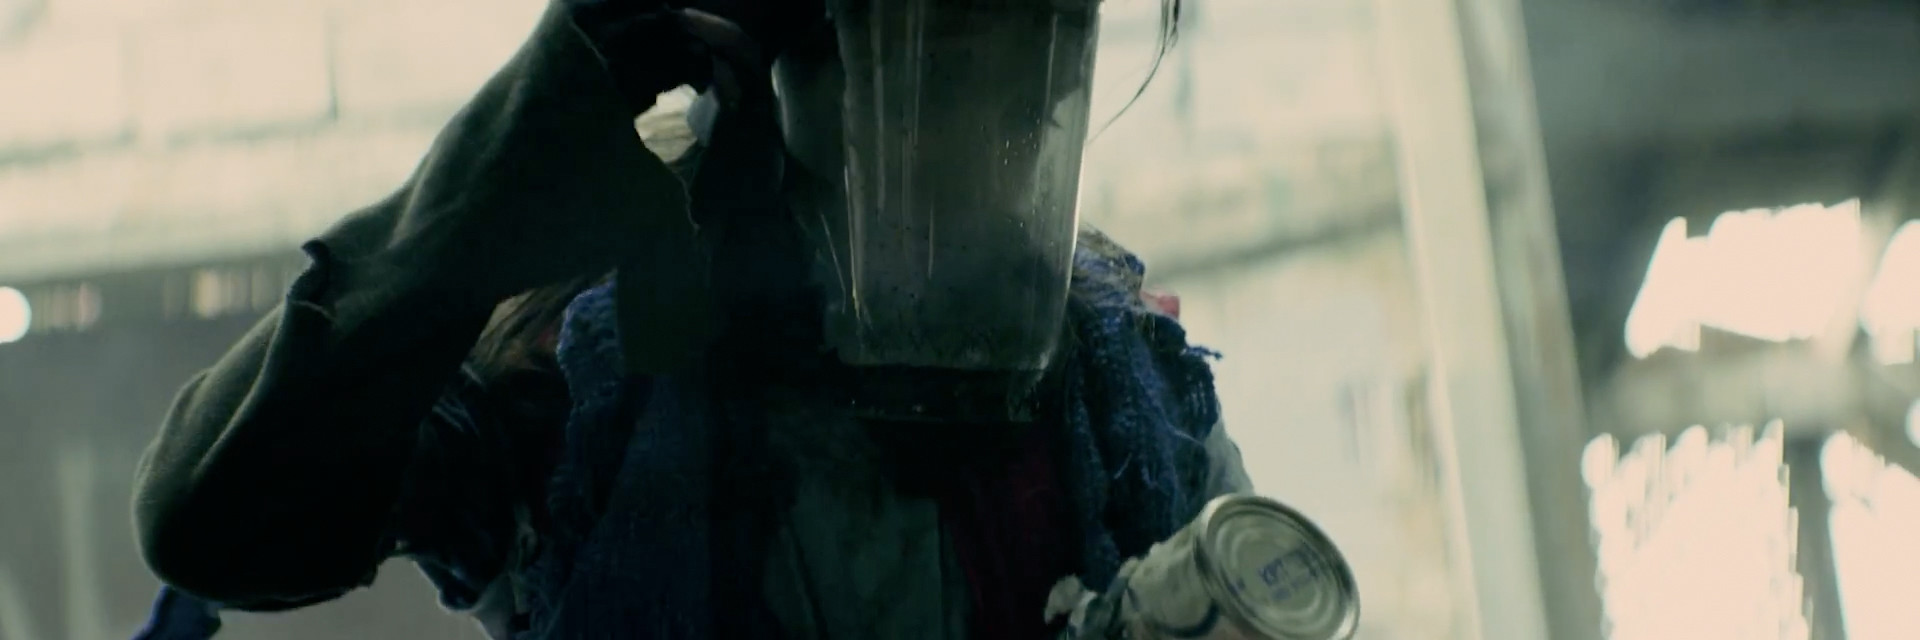 """Hand made gas mask to director's specifications, for Devin Sinha's """"Coming Home"""" music video, directed by Sam Nuttman"""